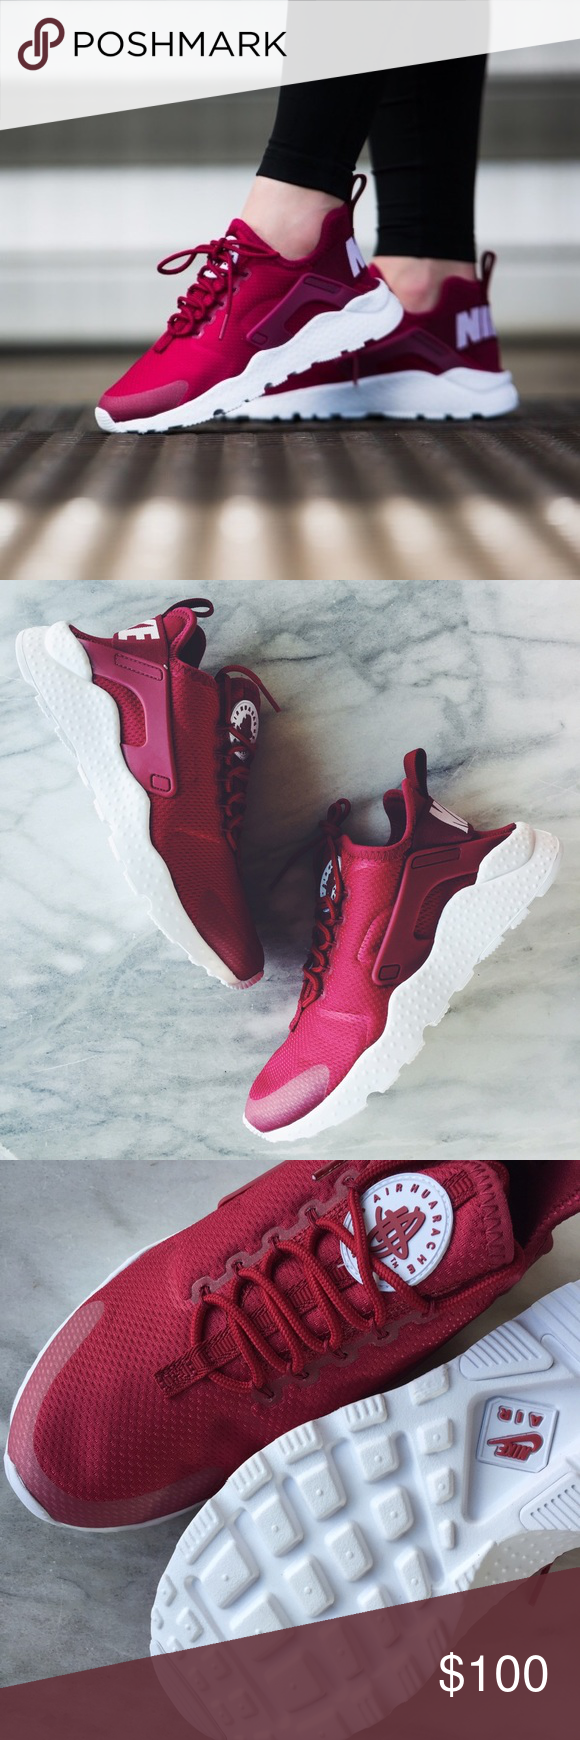 new concept a8a41 a2b0e Nike Air Huarache Ultra Sneakers •The Nike Air Huarache Ultra Women s Shoe  is crafted with a stretchy one-piece upper, seamless molded details and an  ...